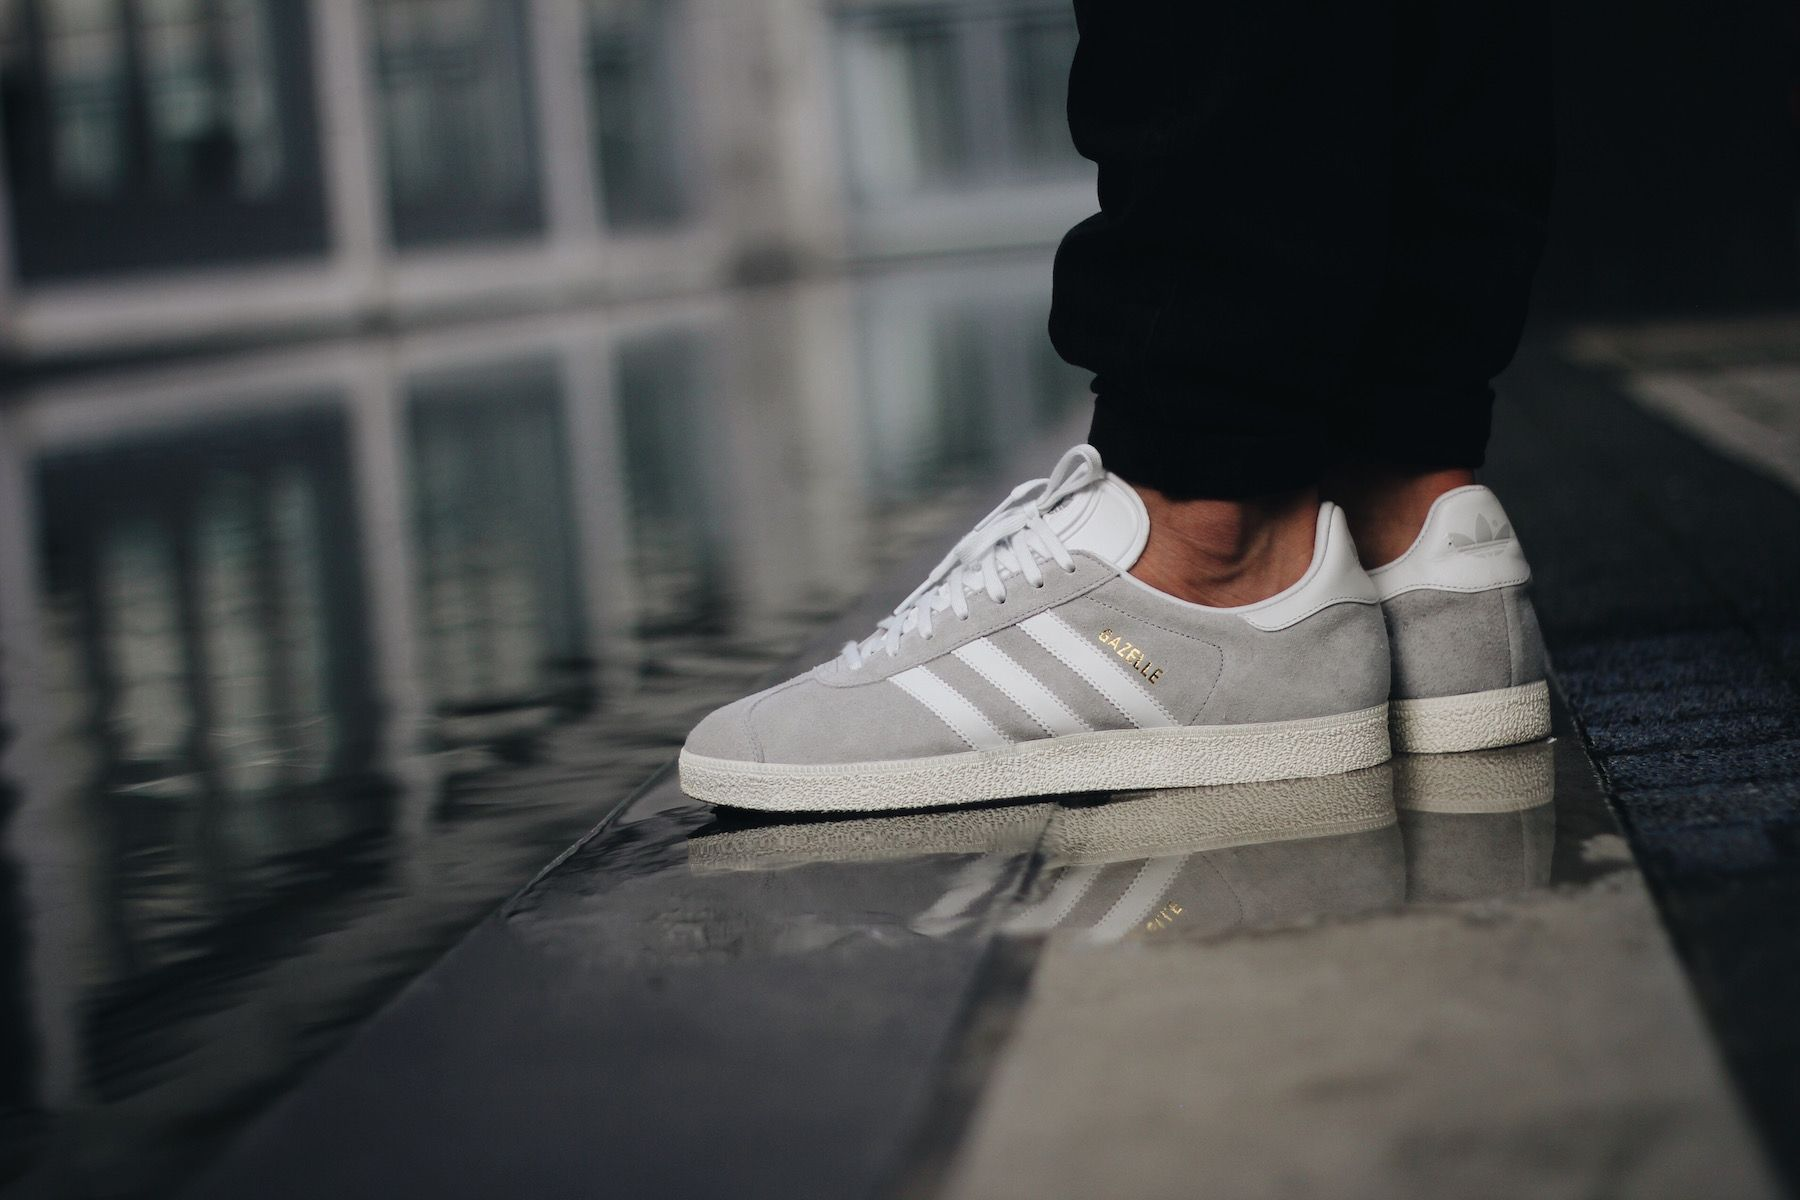 adidas gazelle black white on feet